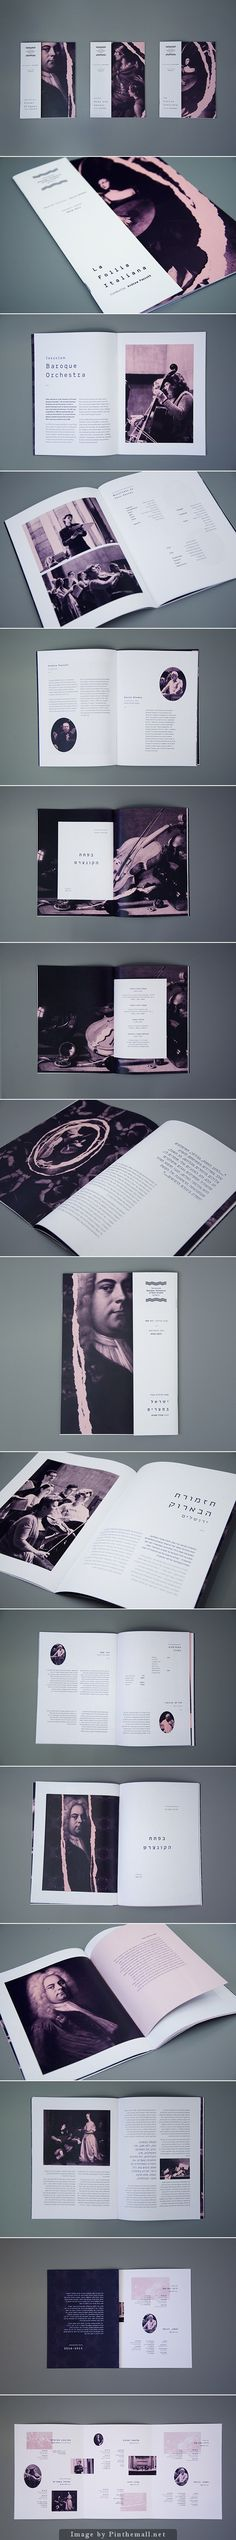 Jerusalem Baroque Orchestra, is the first Israeli orchestra playing baroque music instruments and musical techniques that were common in those days. The renewed branding is designed to expose the orchestra to new audiences and express her uniqueness. Page Layout Design, Magazine Layout Design, Graphic Design Layouts, Book Layout, Book Design, Typography Layout, Graphic Design Typography, Graphic Design Illustration, Brochure Layout